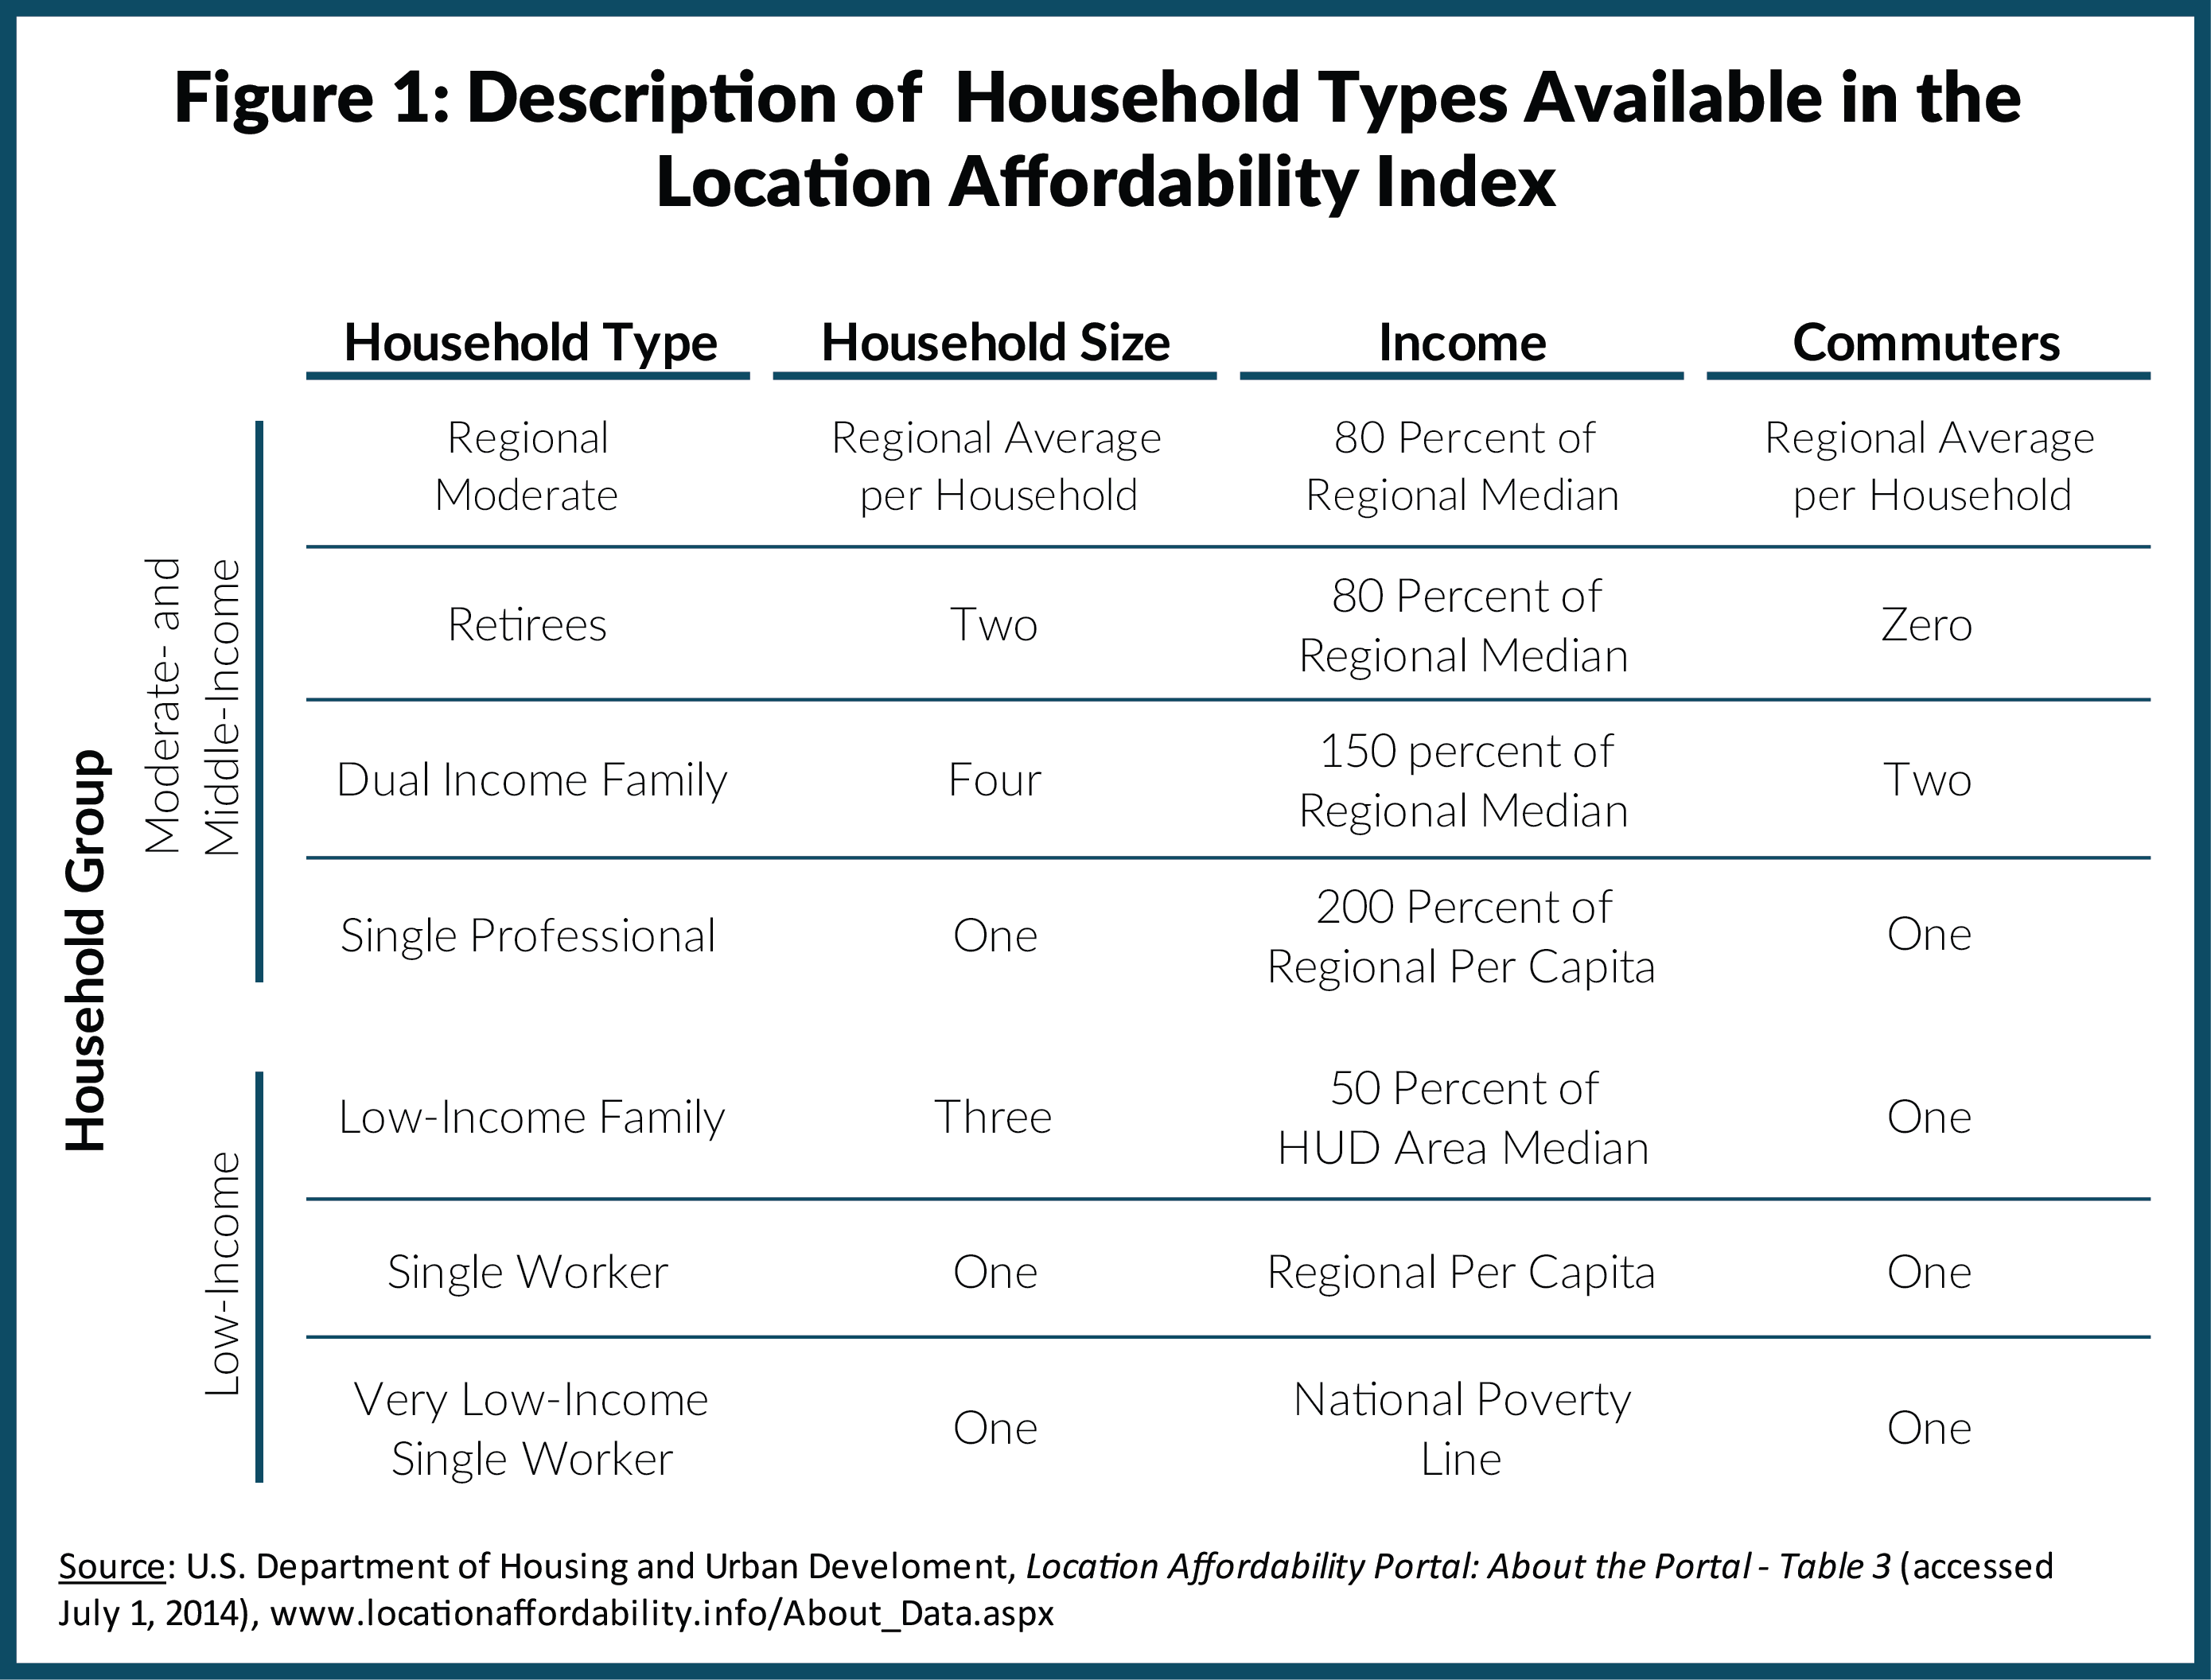 Description of Household Types Available in the Location Affordability Index